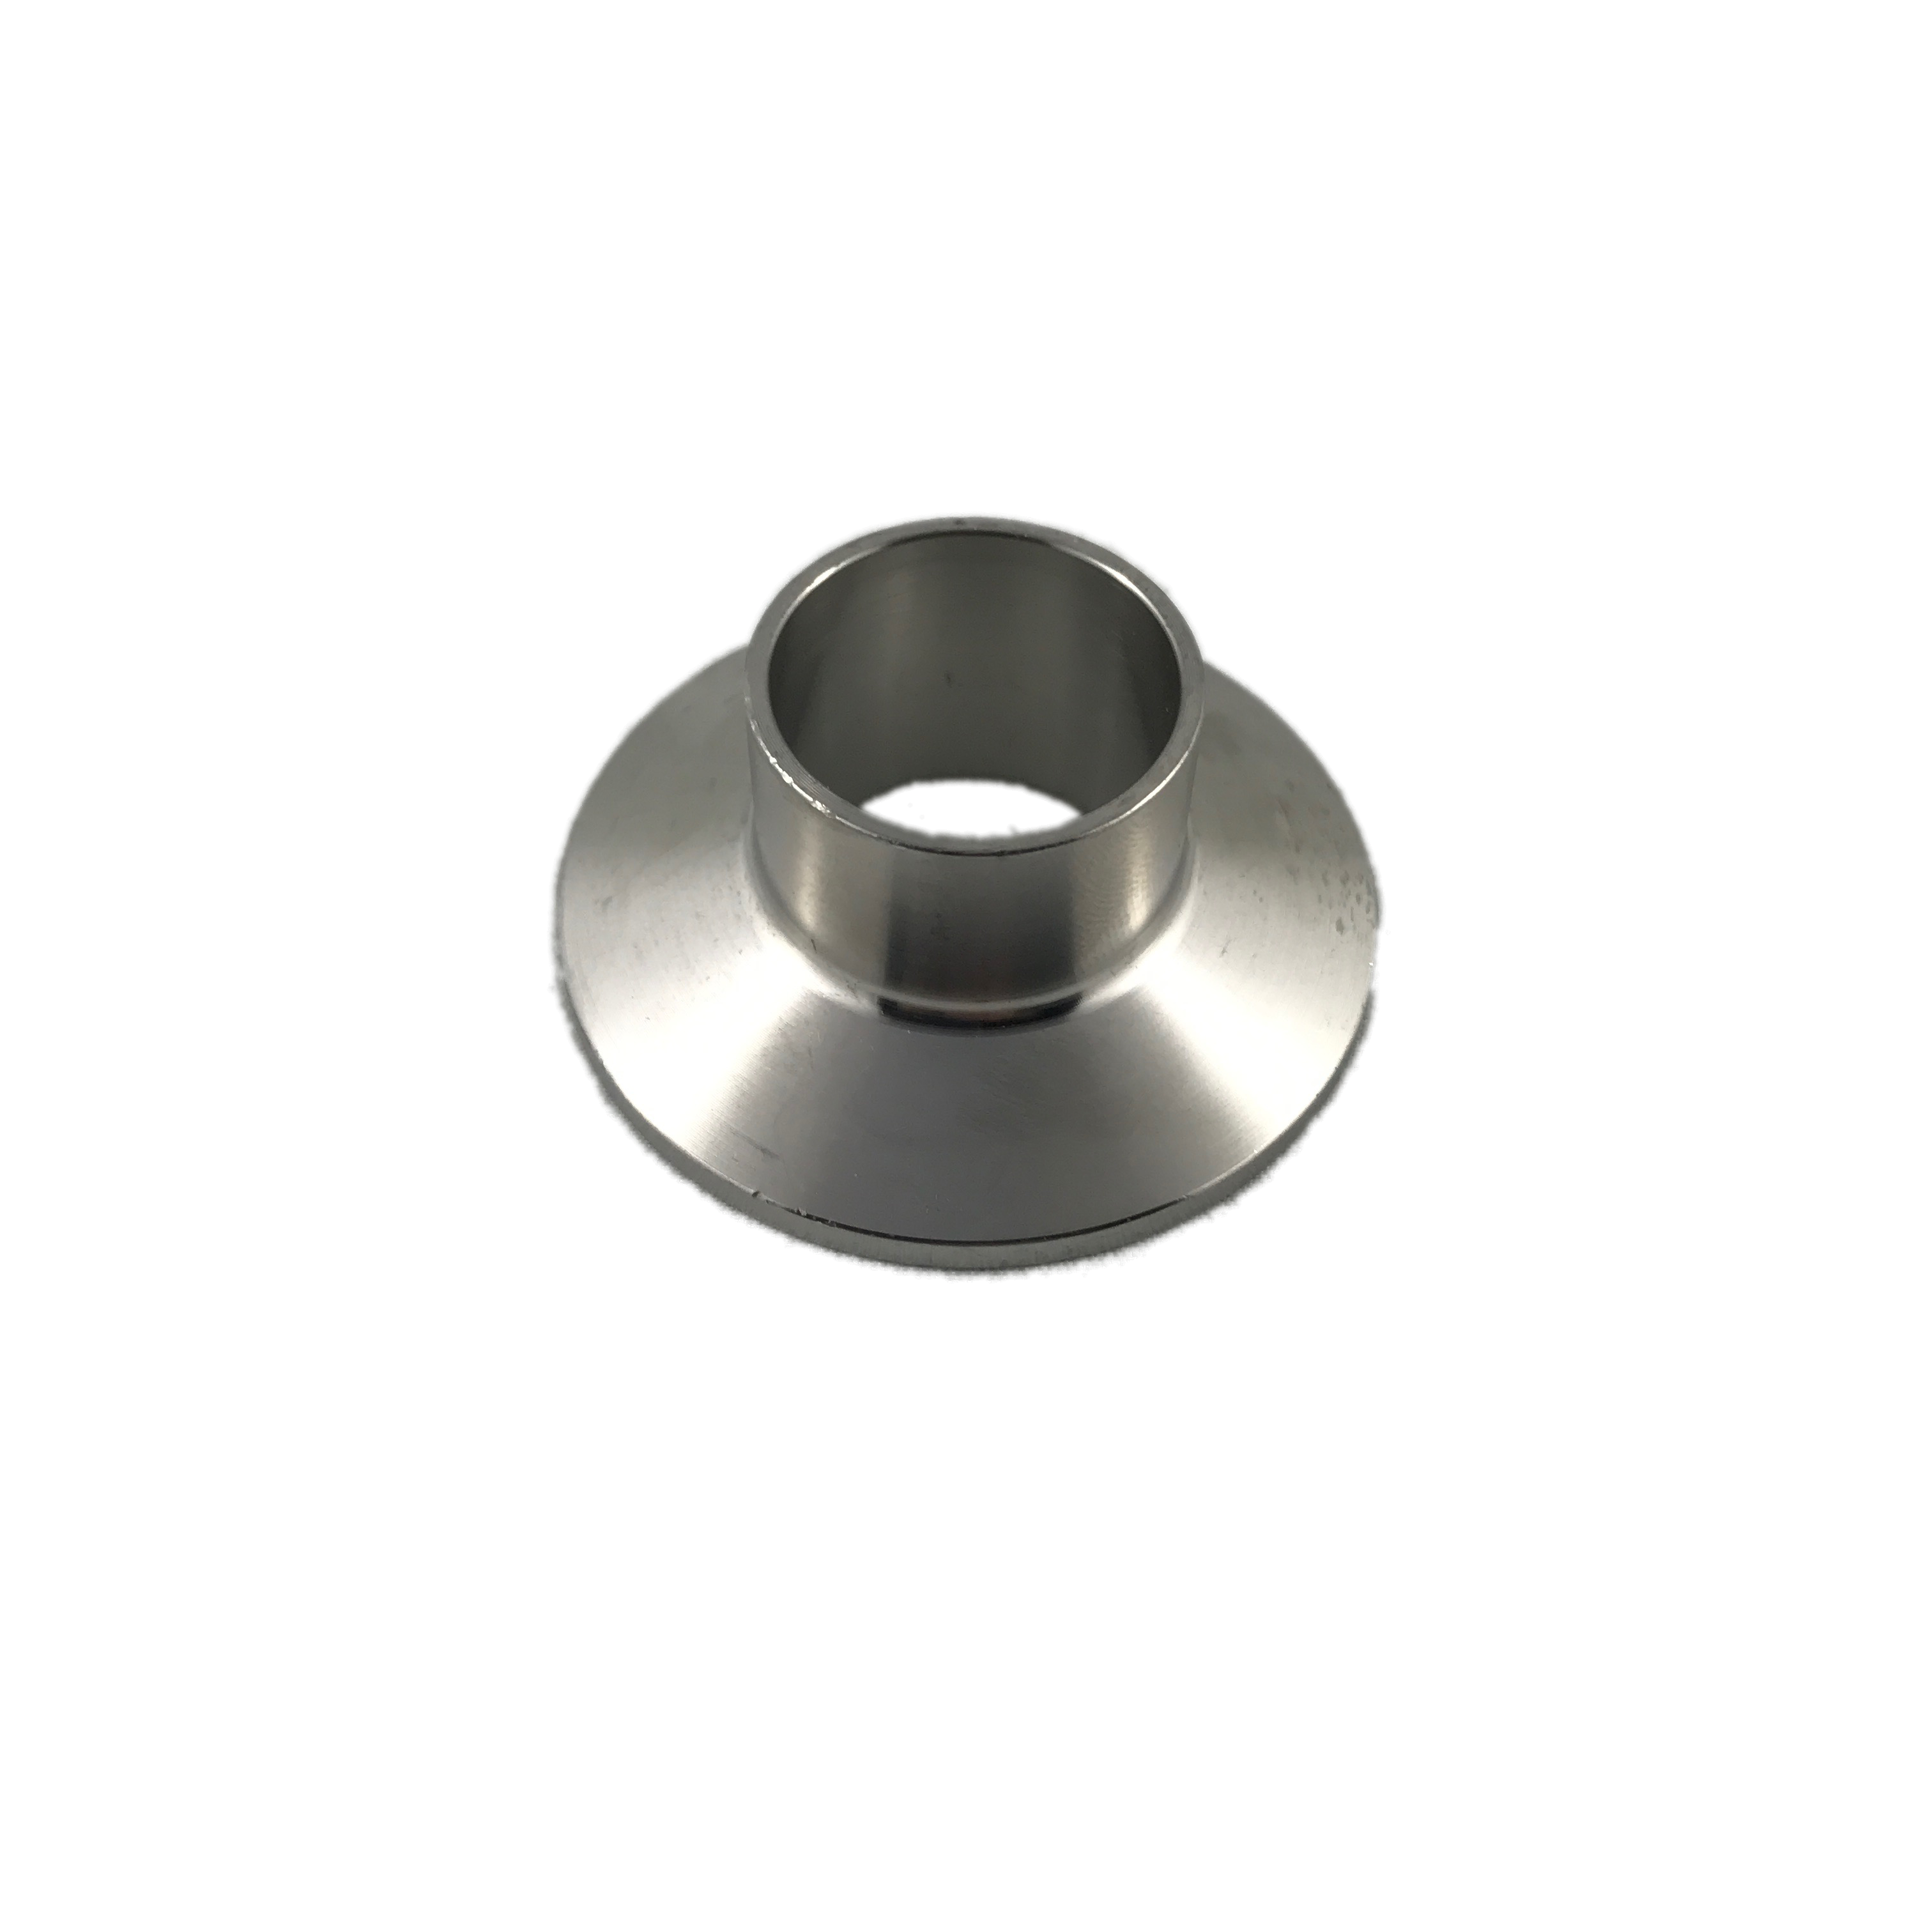 Stainless steel tri clamp inch weld on ferrule